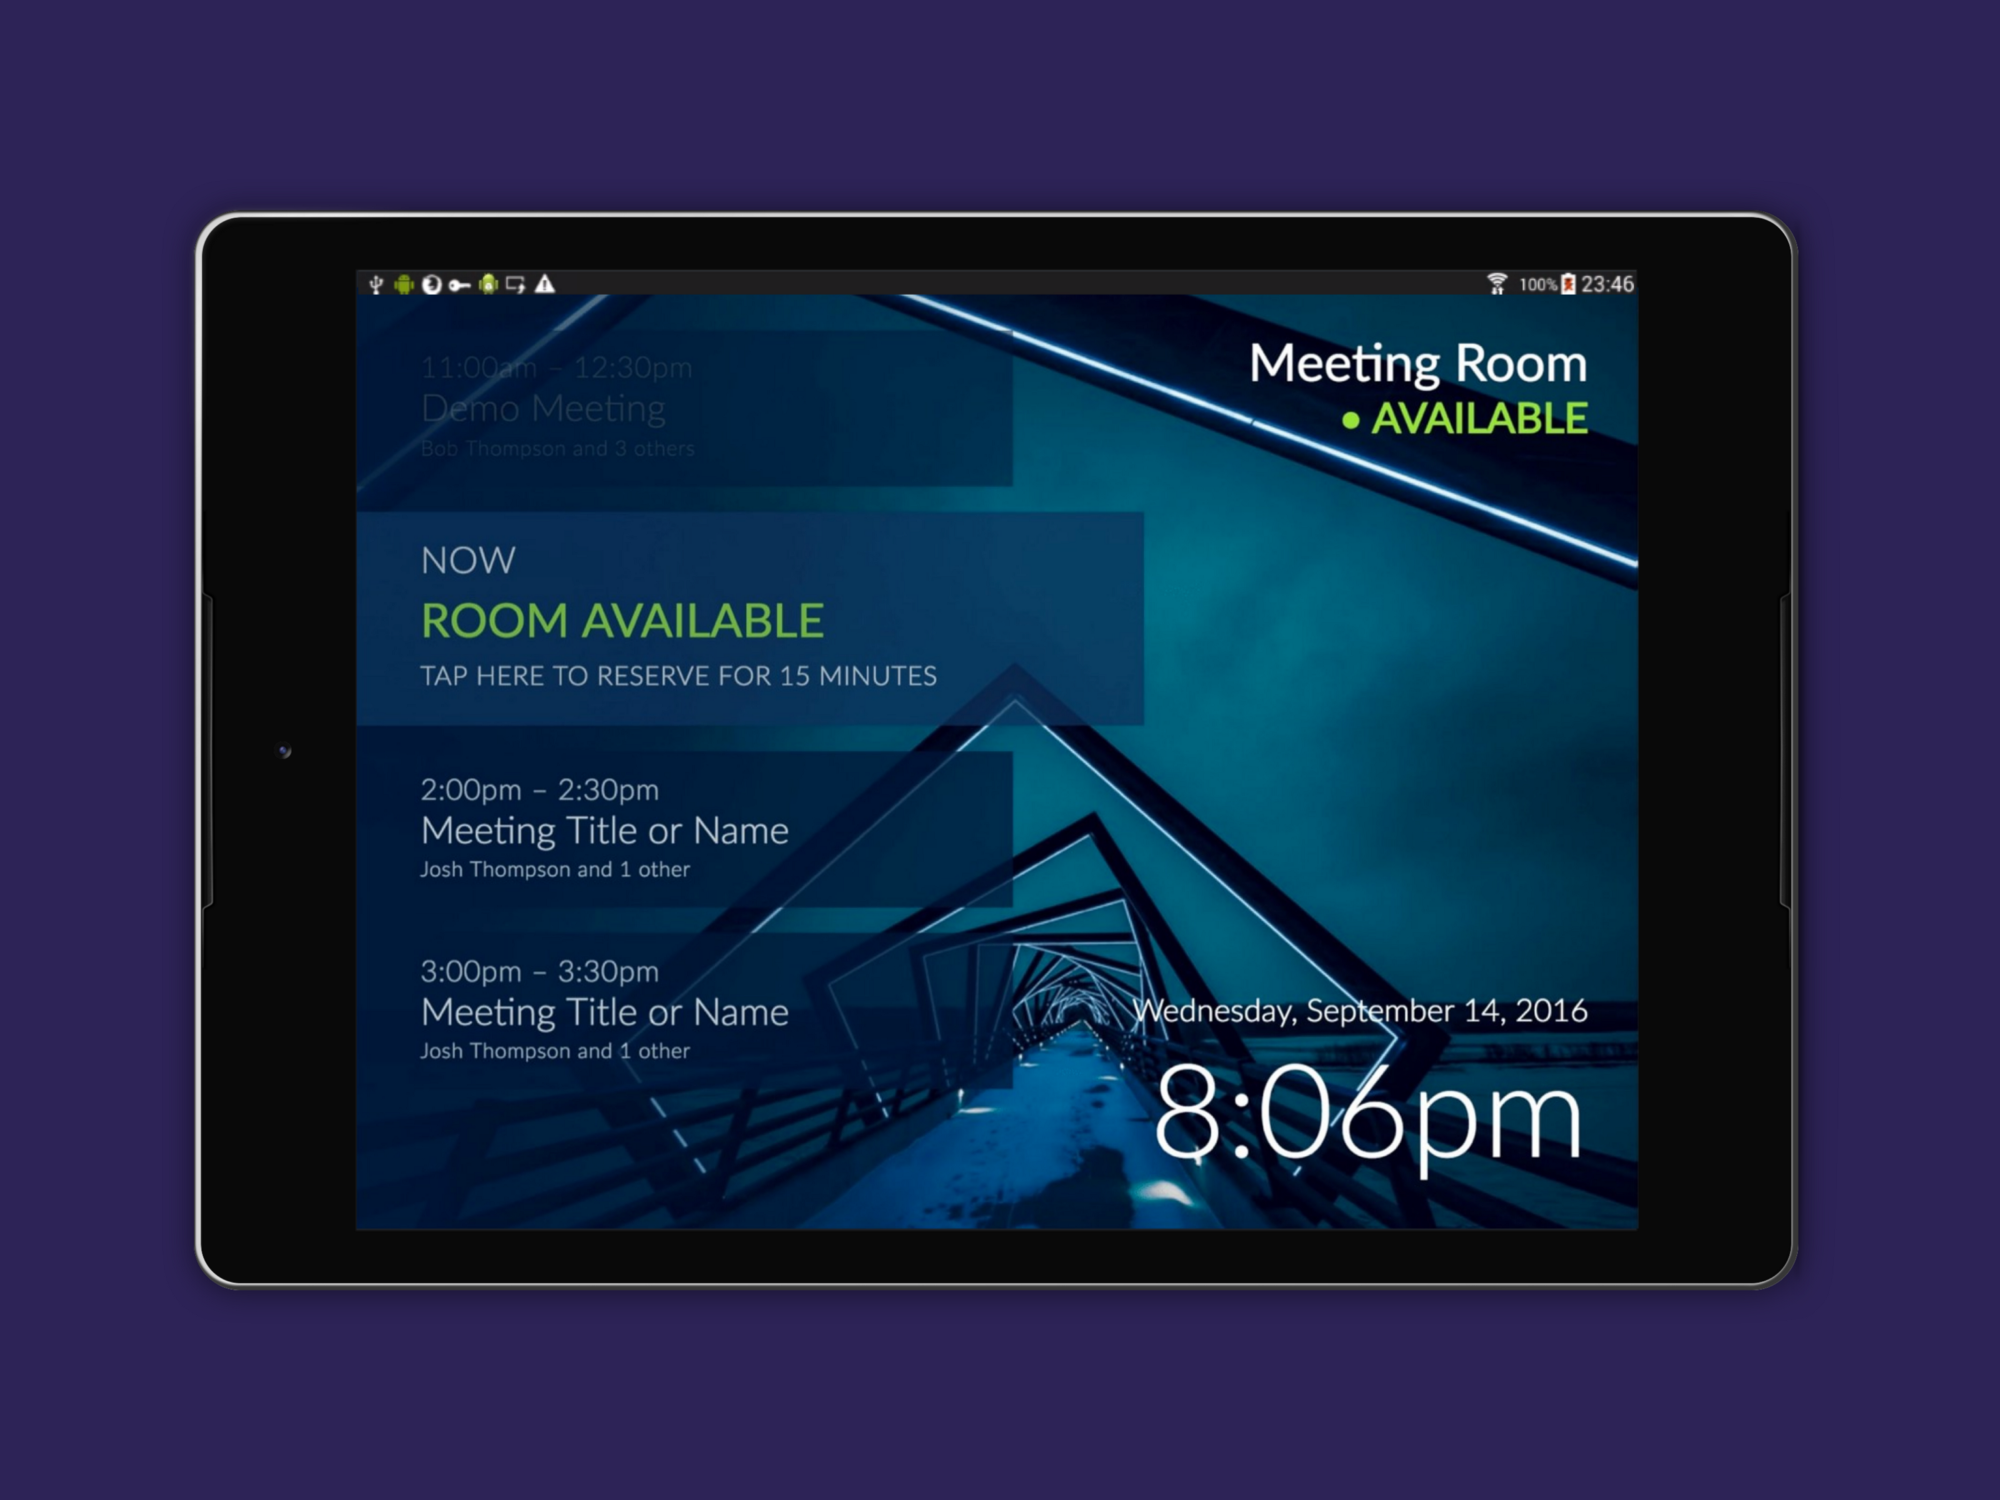 How To Add A Meeting Room Display To Office 365 Android Tablets